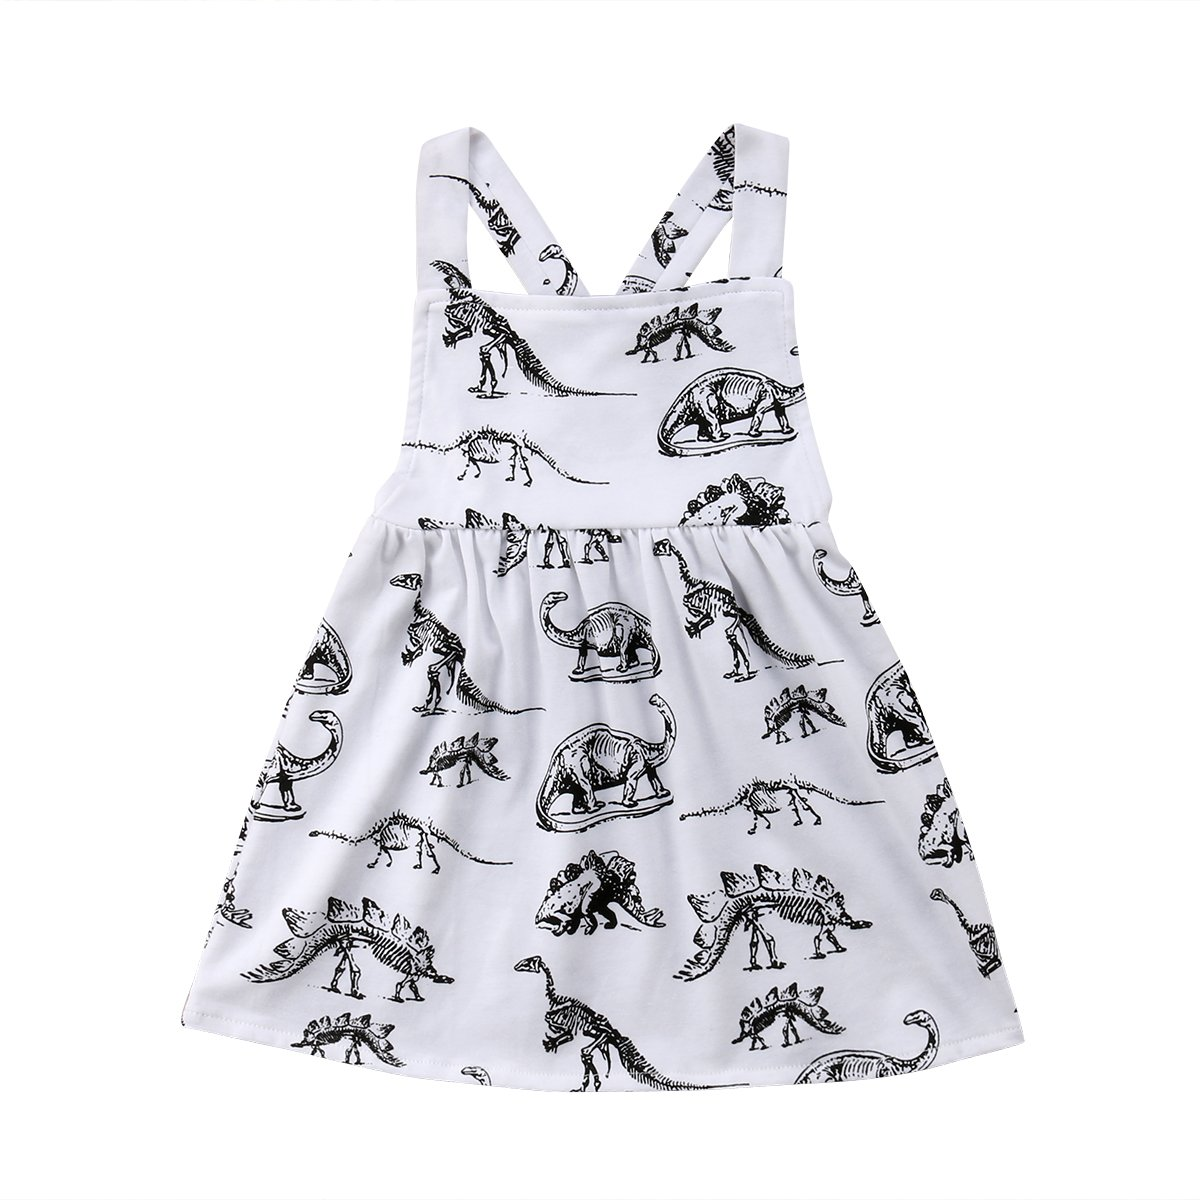 26ea2b09757 Amazon.com  yannzi Baby Girls Dinosaur Dress Clothes Ruffle Sleeve Tutu  Skirt Backless Sundress Birthday Party Princess Formal Outfit  Clothing